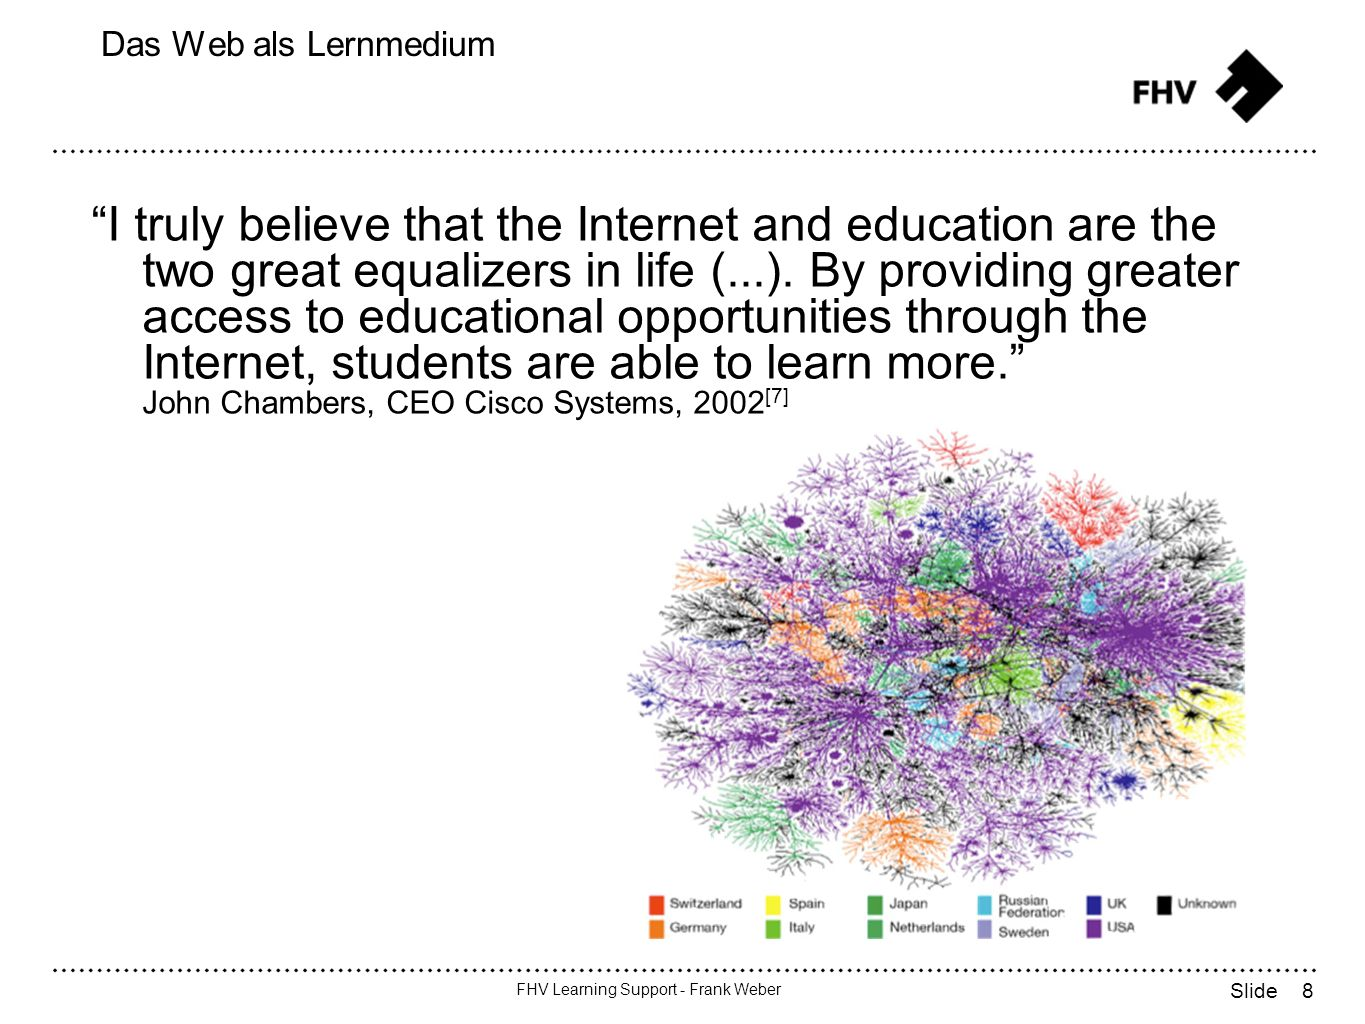 8 FHV Learning Support - Frank Weber Slide Das Web als Lernmedium I truly believe that the Internet and education are the two great equalizers in life